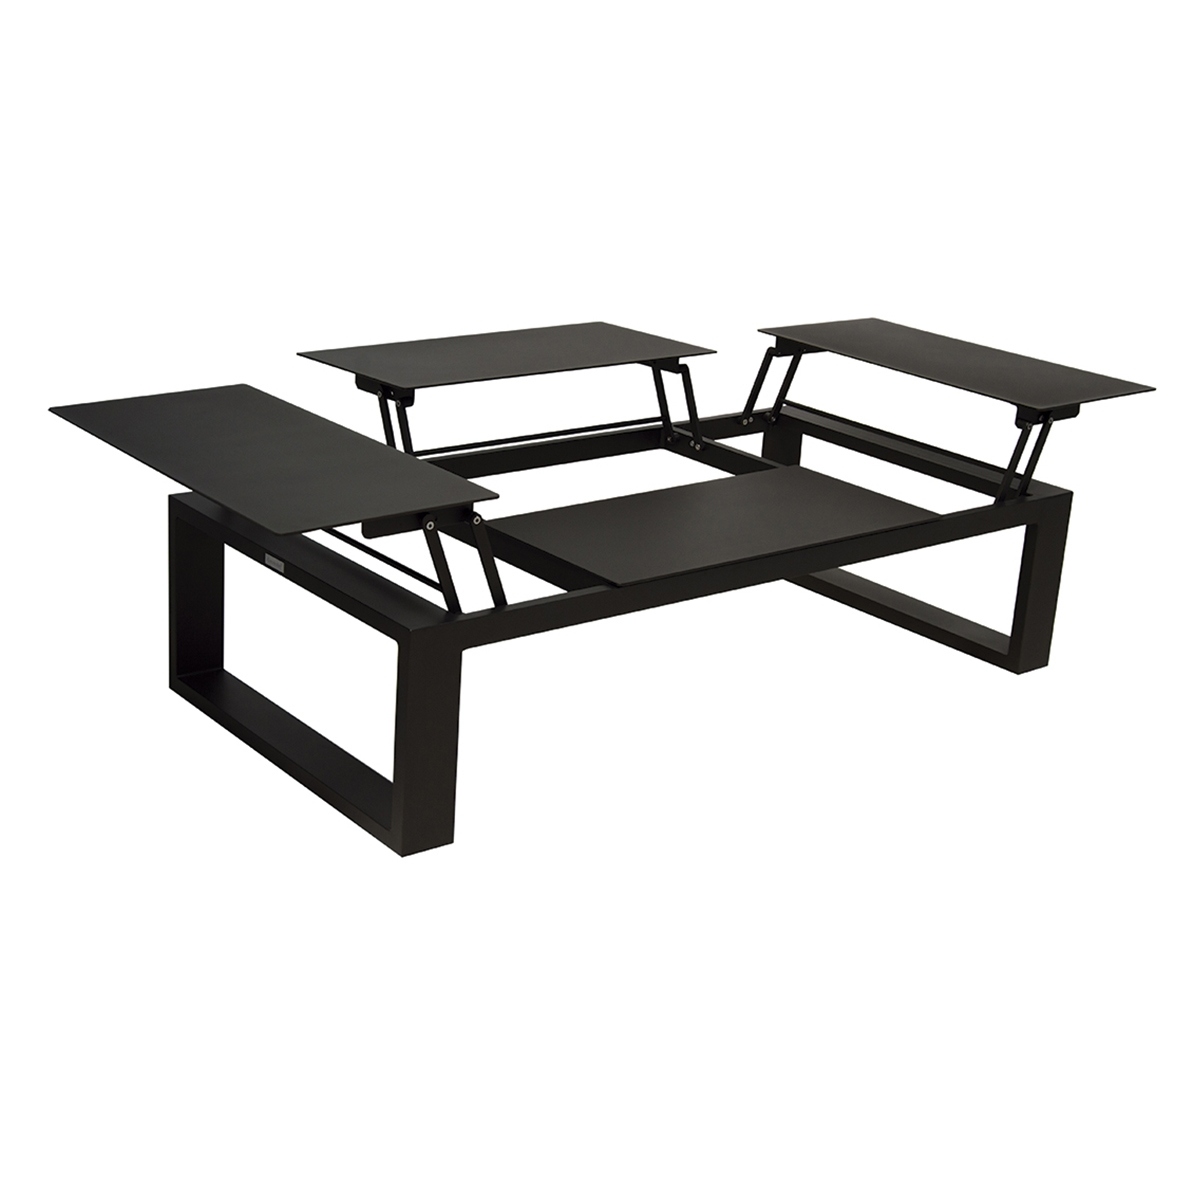 table basse avec plateau relevable zendart outdoor. Black Bedroom Furniture Sets. Home Design Ideas